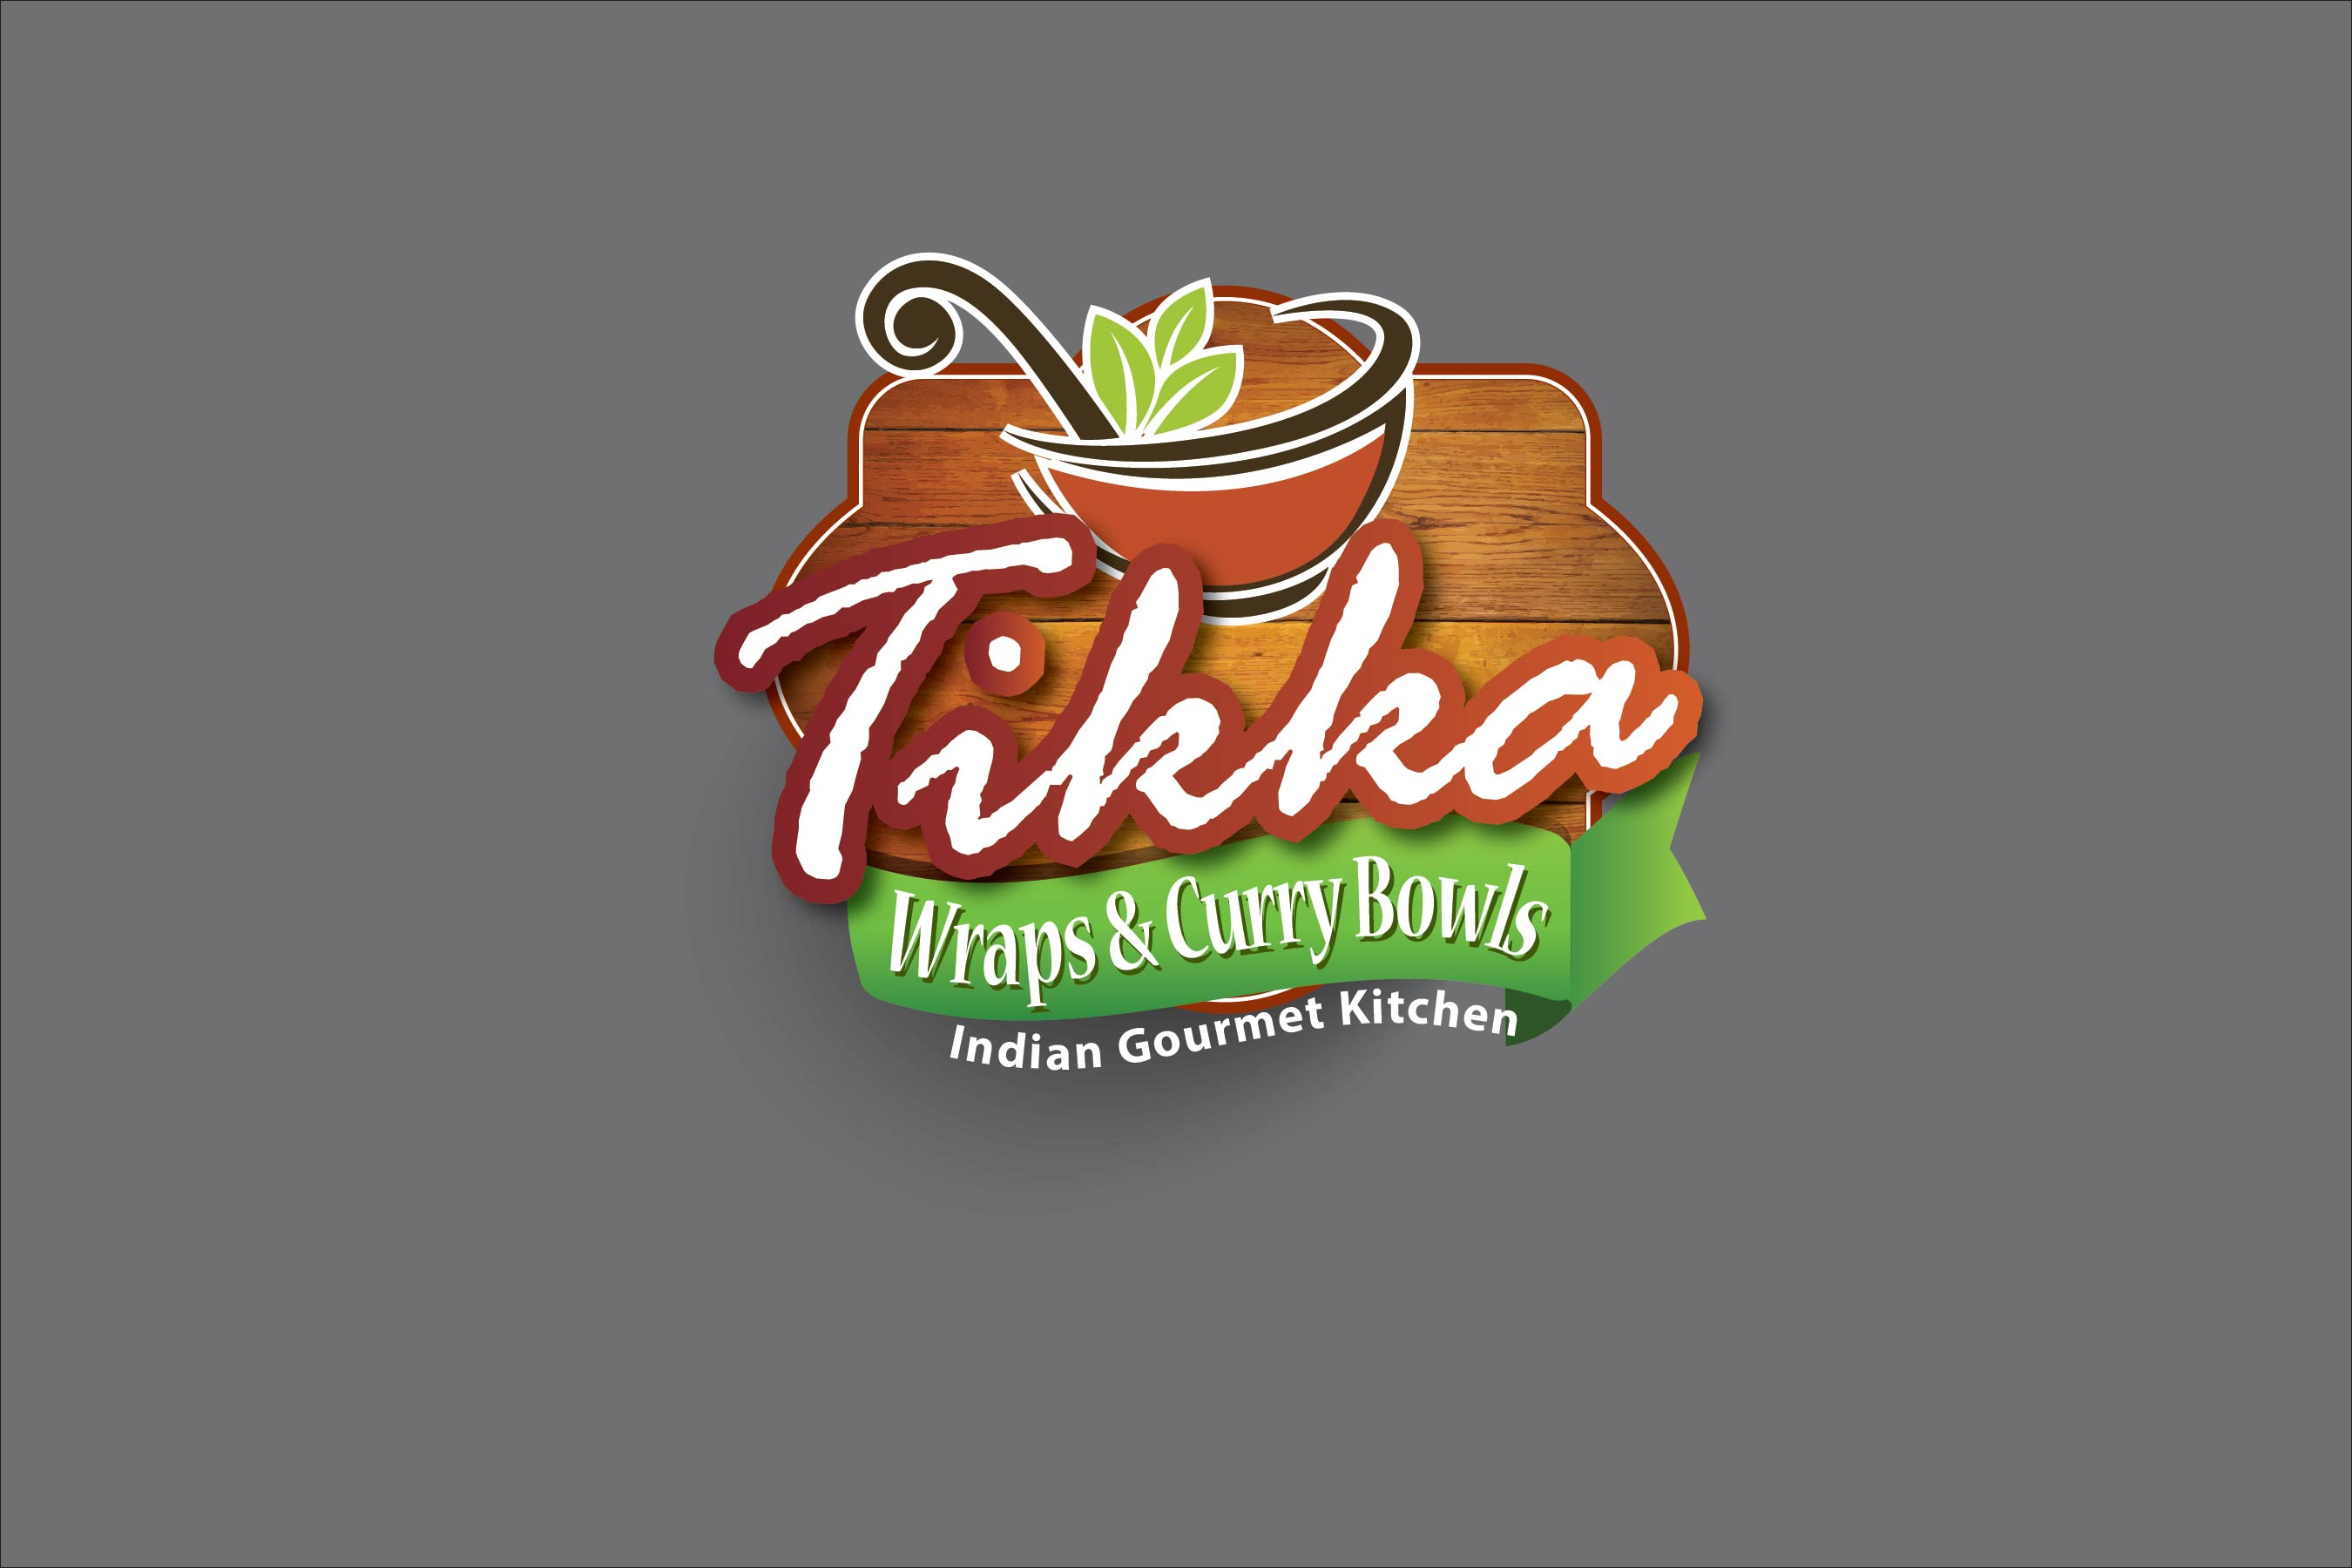 Tikka Wraps & Curry Bowls